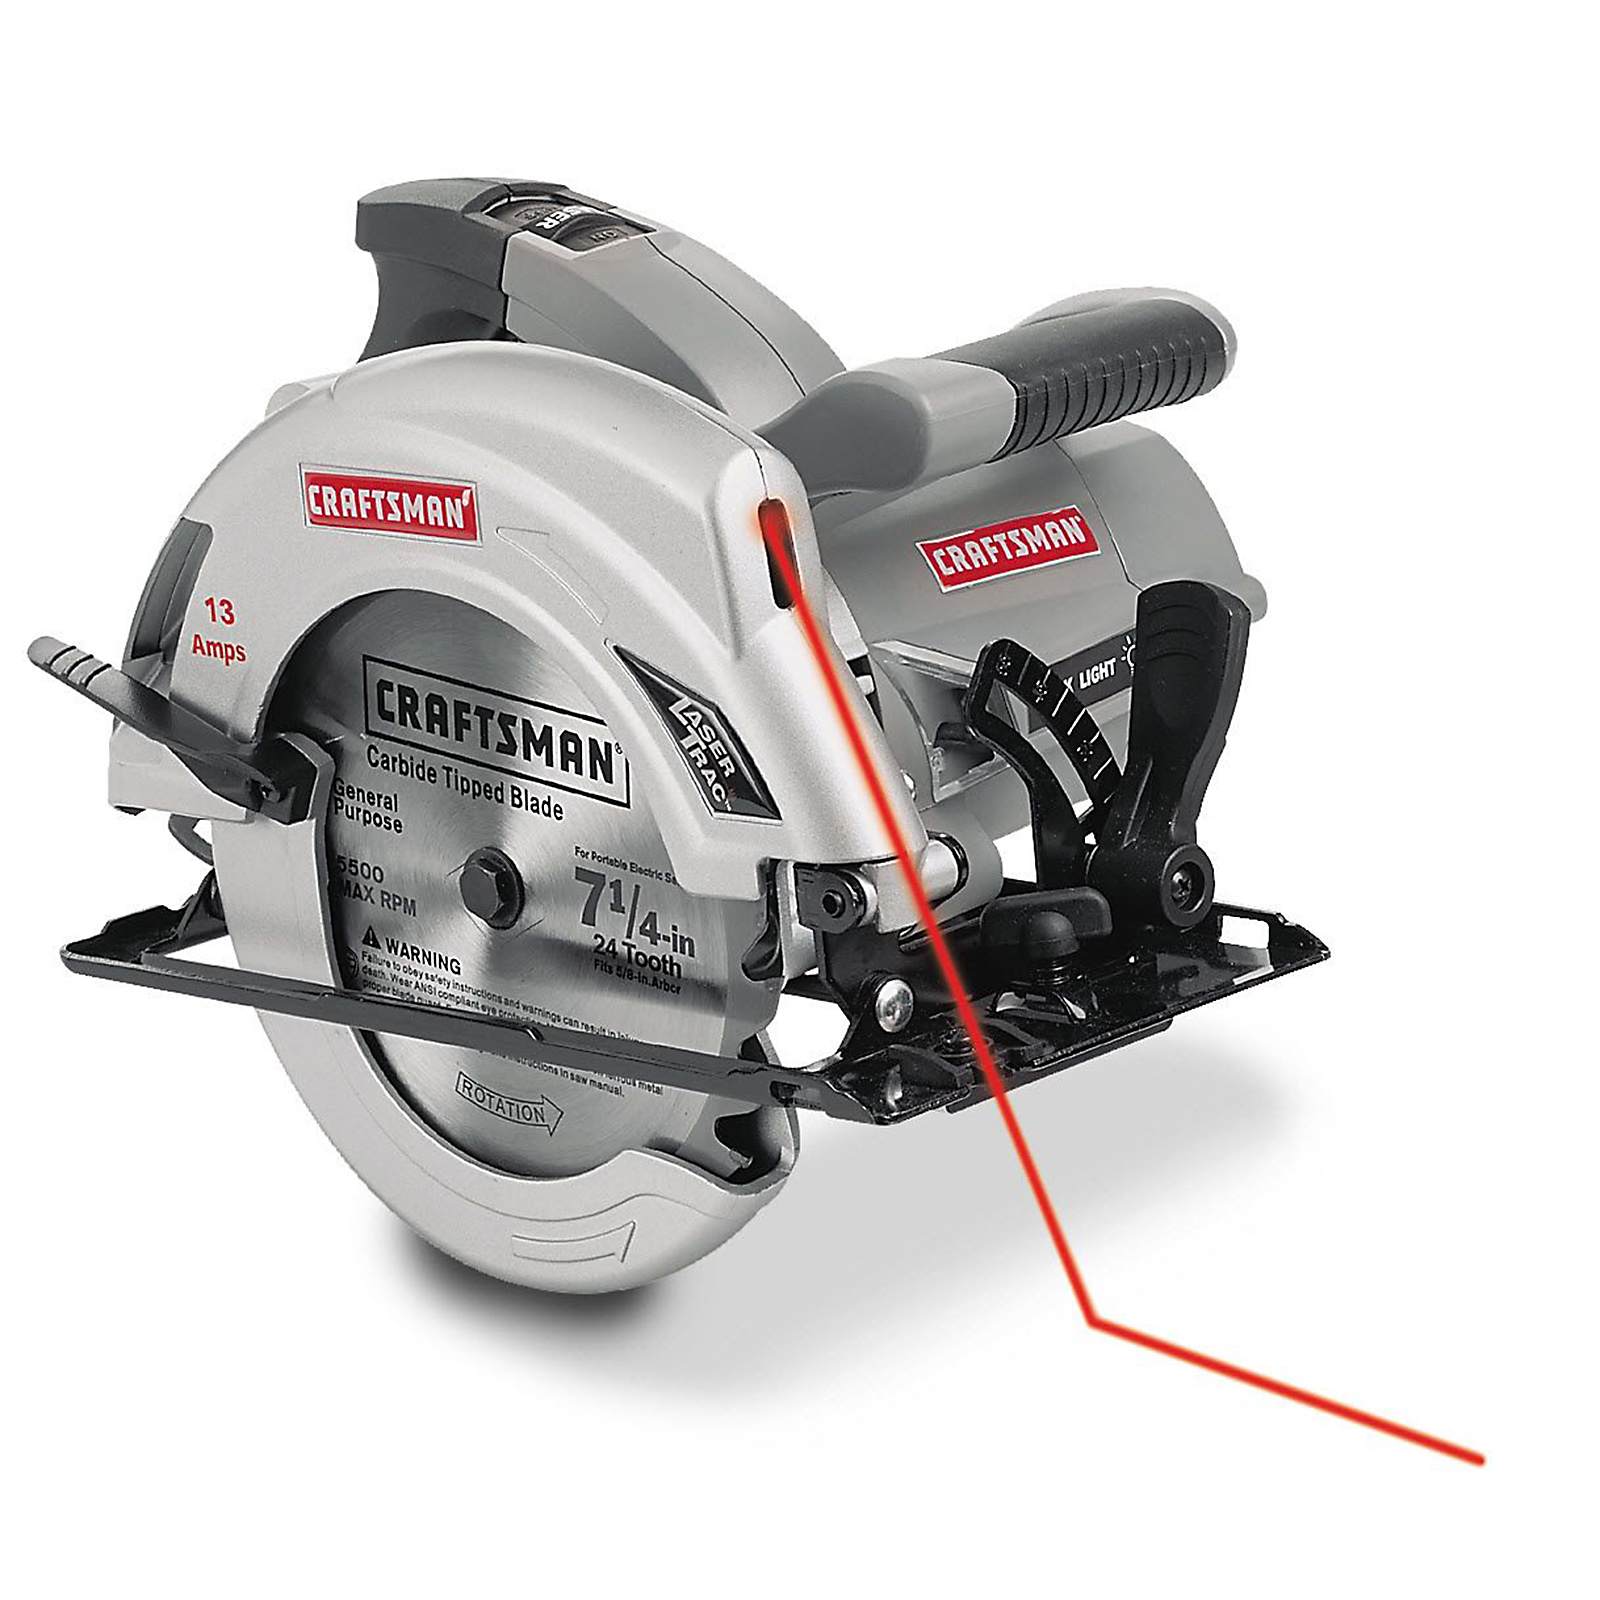 "Craftsman Craftsman 7 1/4"" Circular Saw 10871 13 amp - Sears"